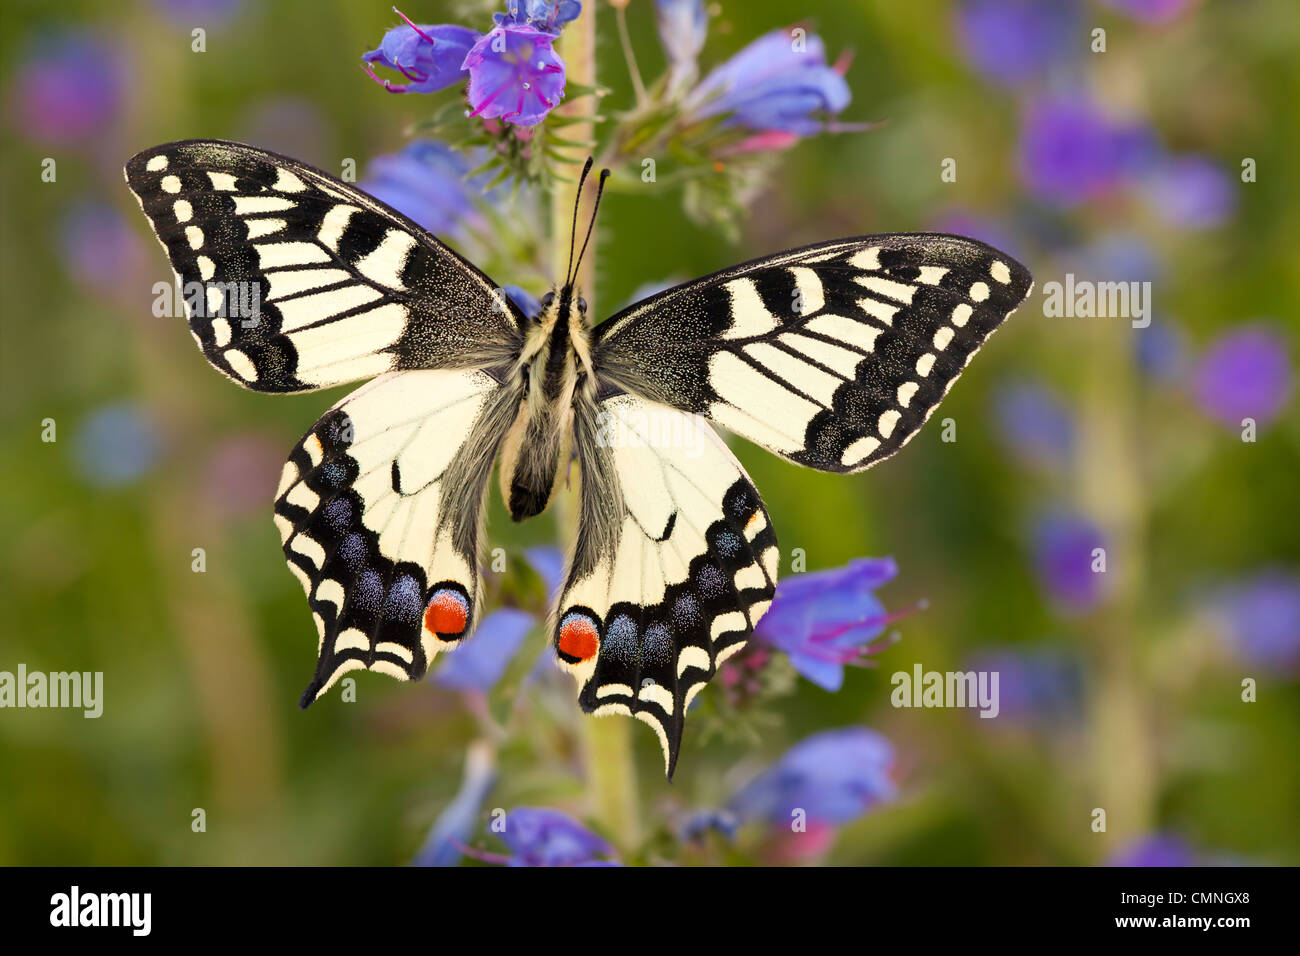 Common Swallowtail butterfly feeding on Viper's Bugloss / Blueweed in alpine meadow. Nordtirol, Tirol, Austrian - Stock Image